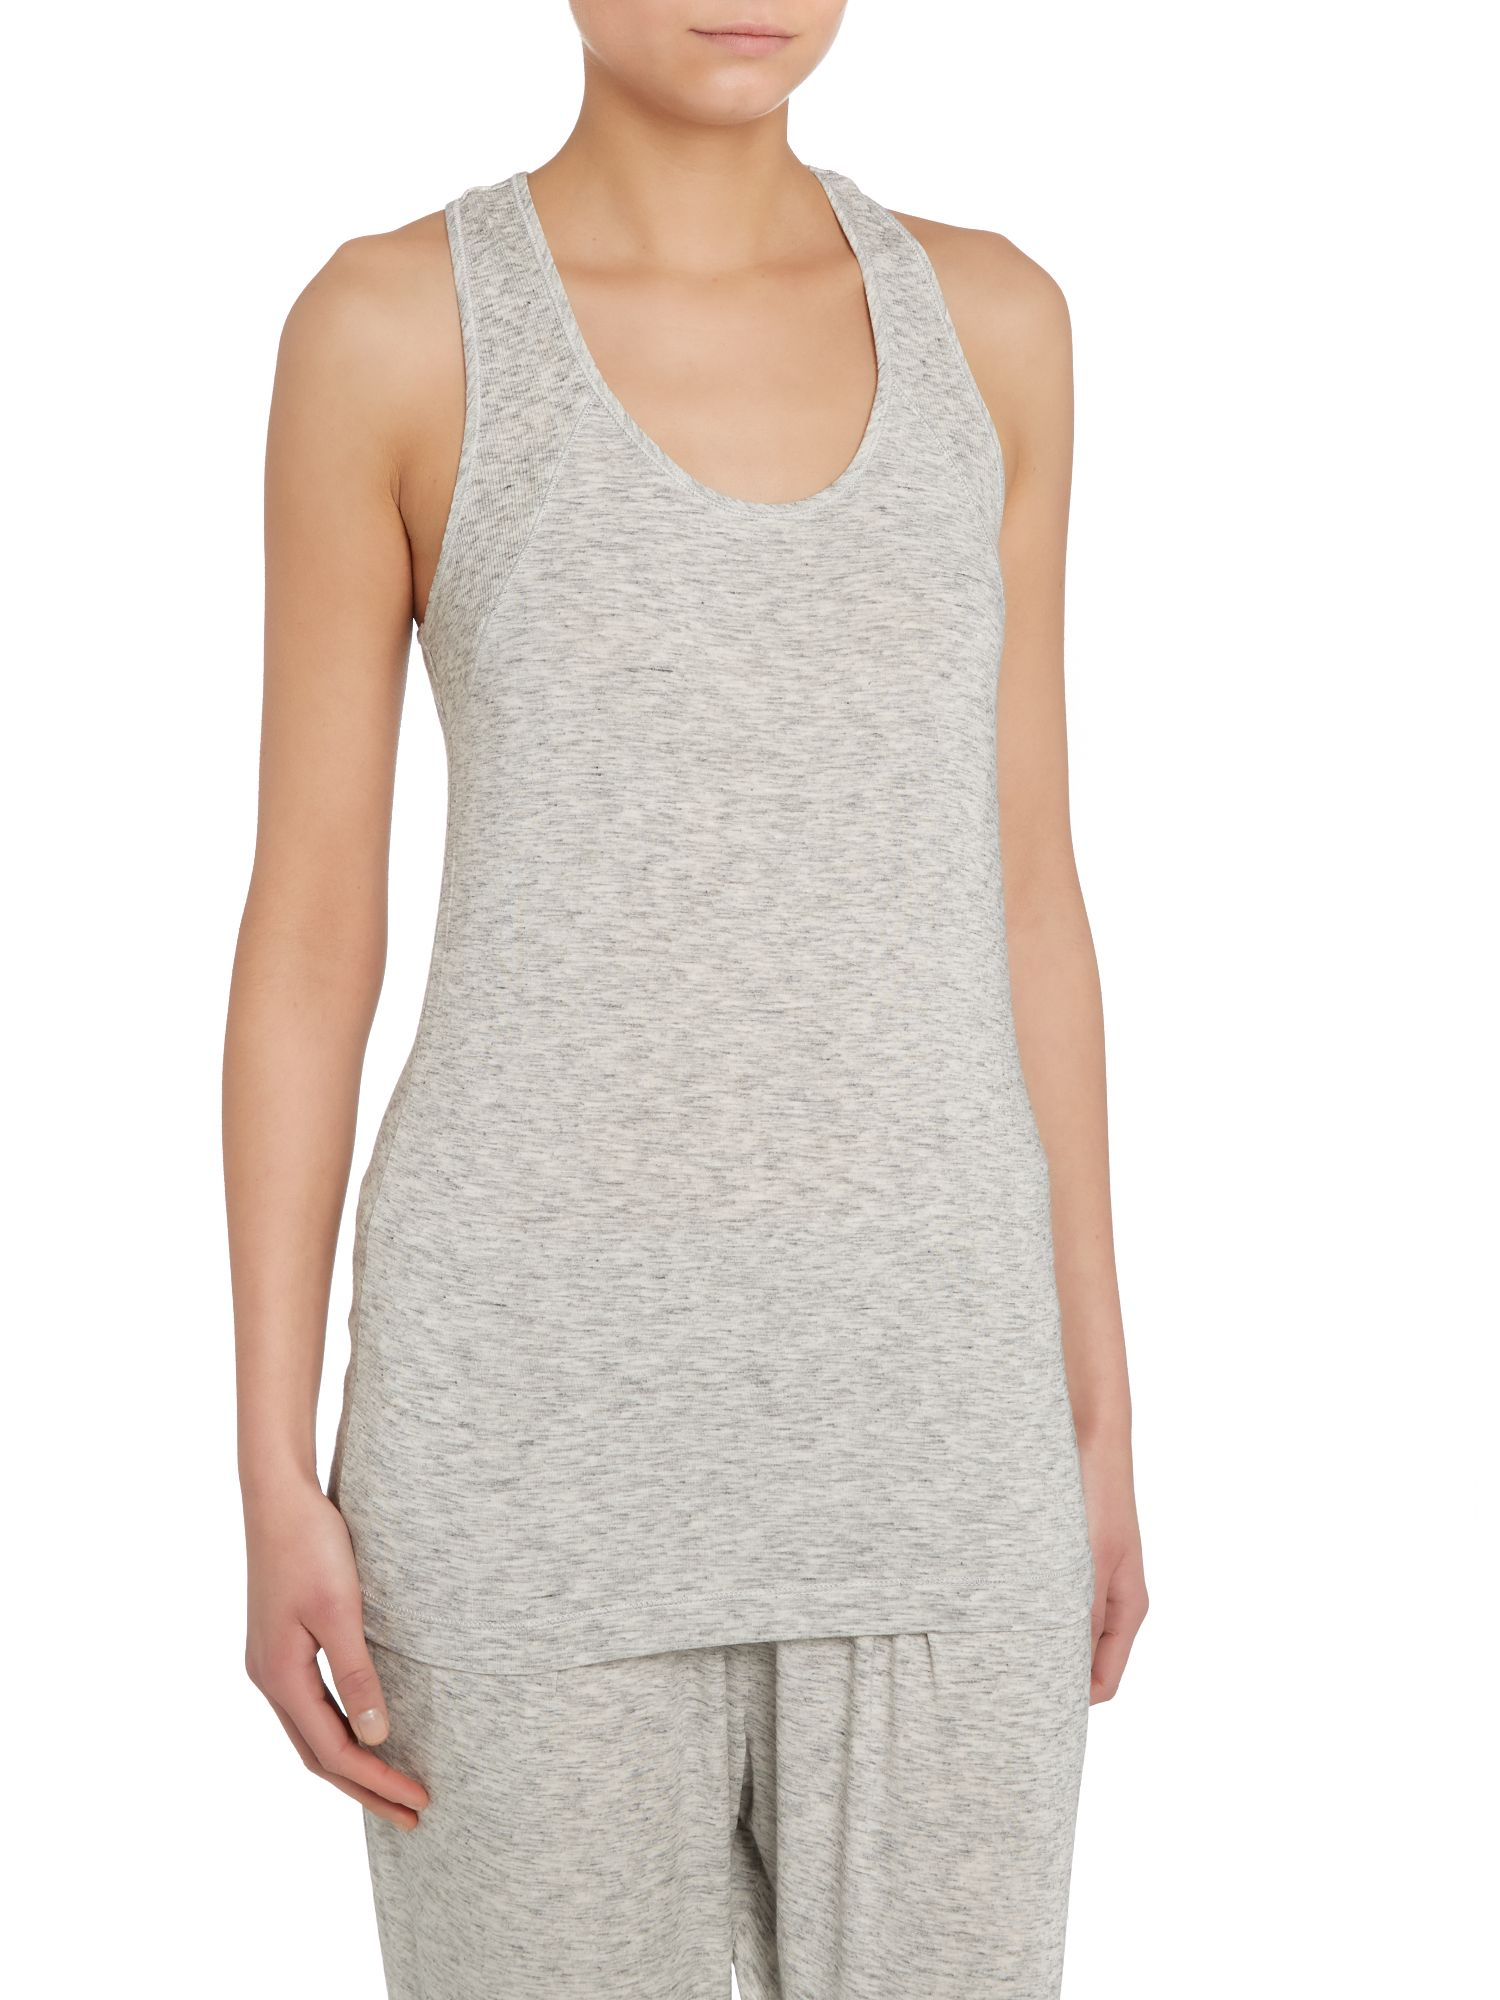 City essentials yoga tank